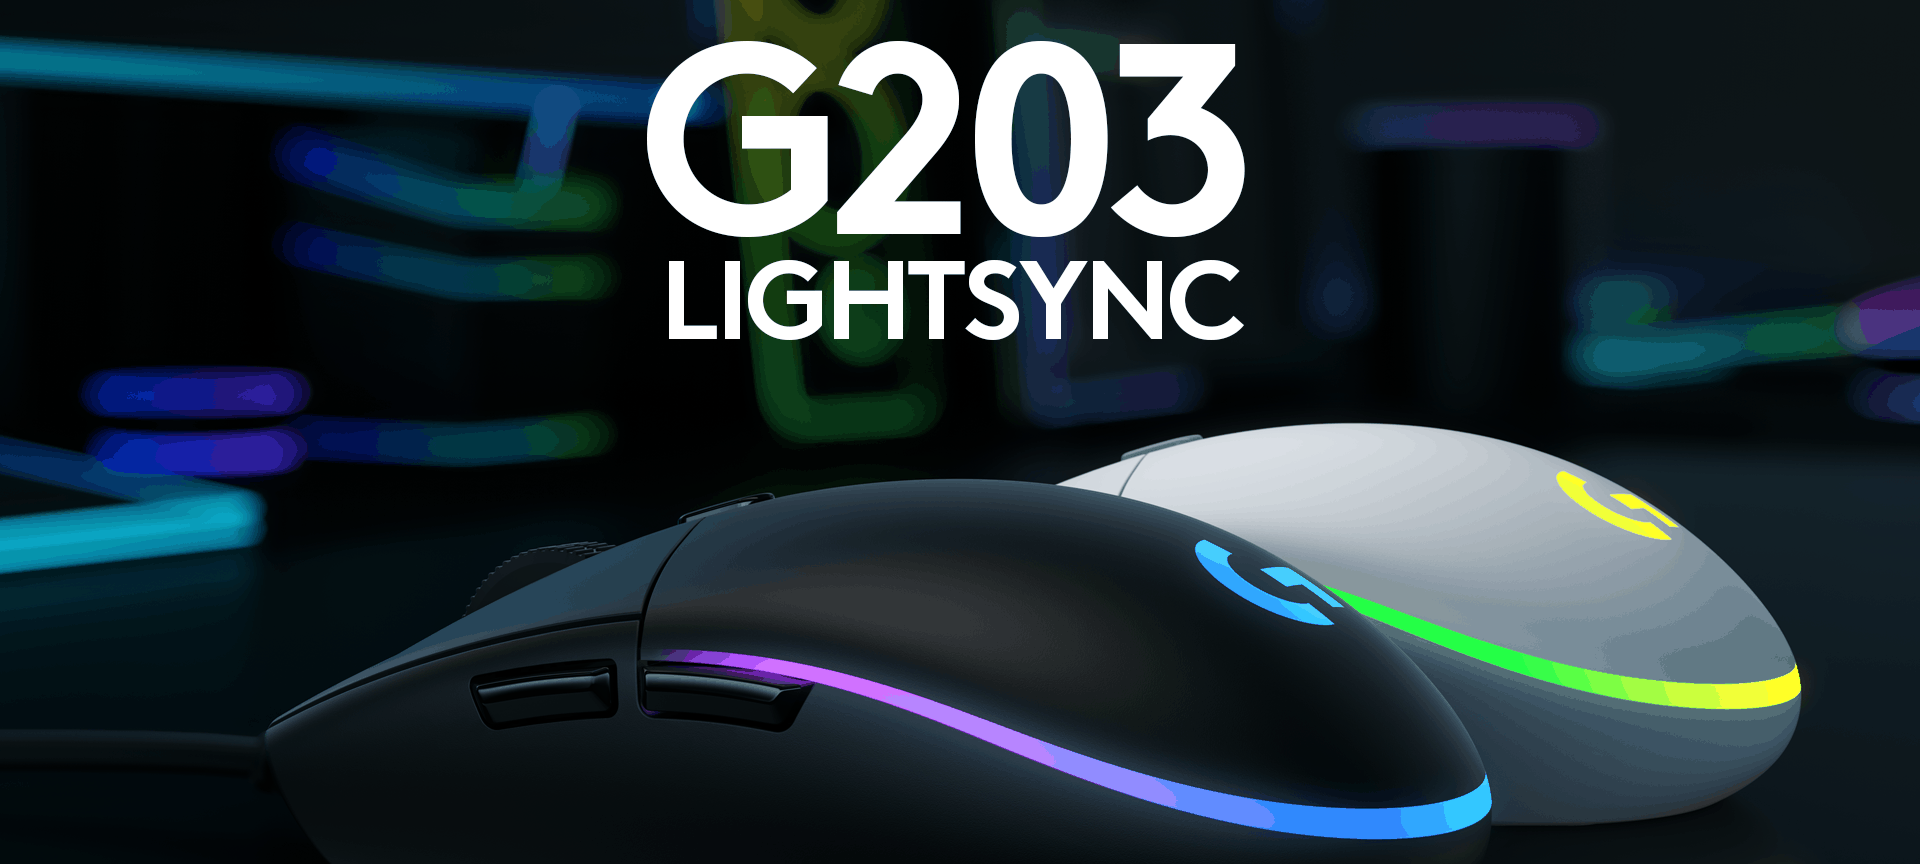 Gaming Maus Logitech G203 Lightsync